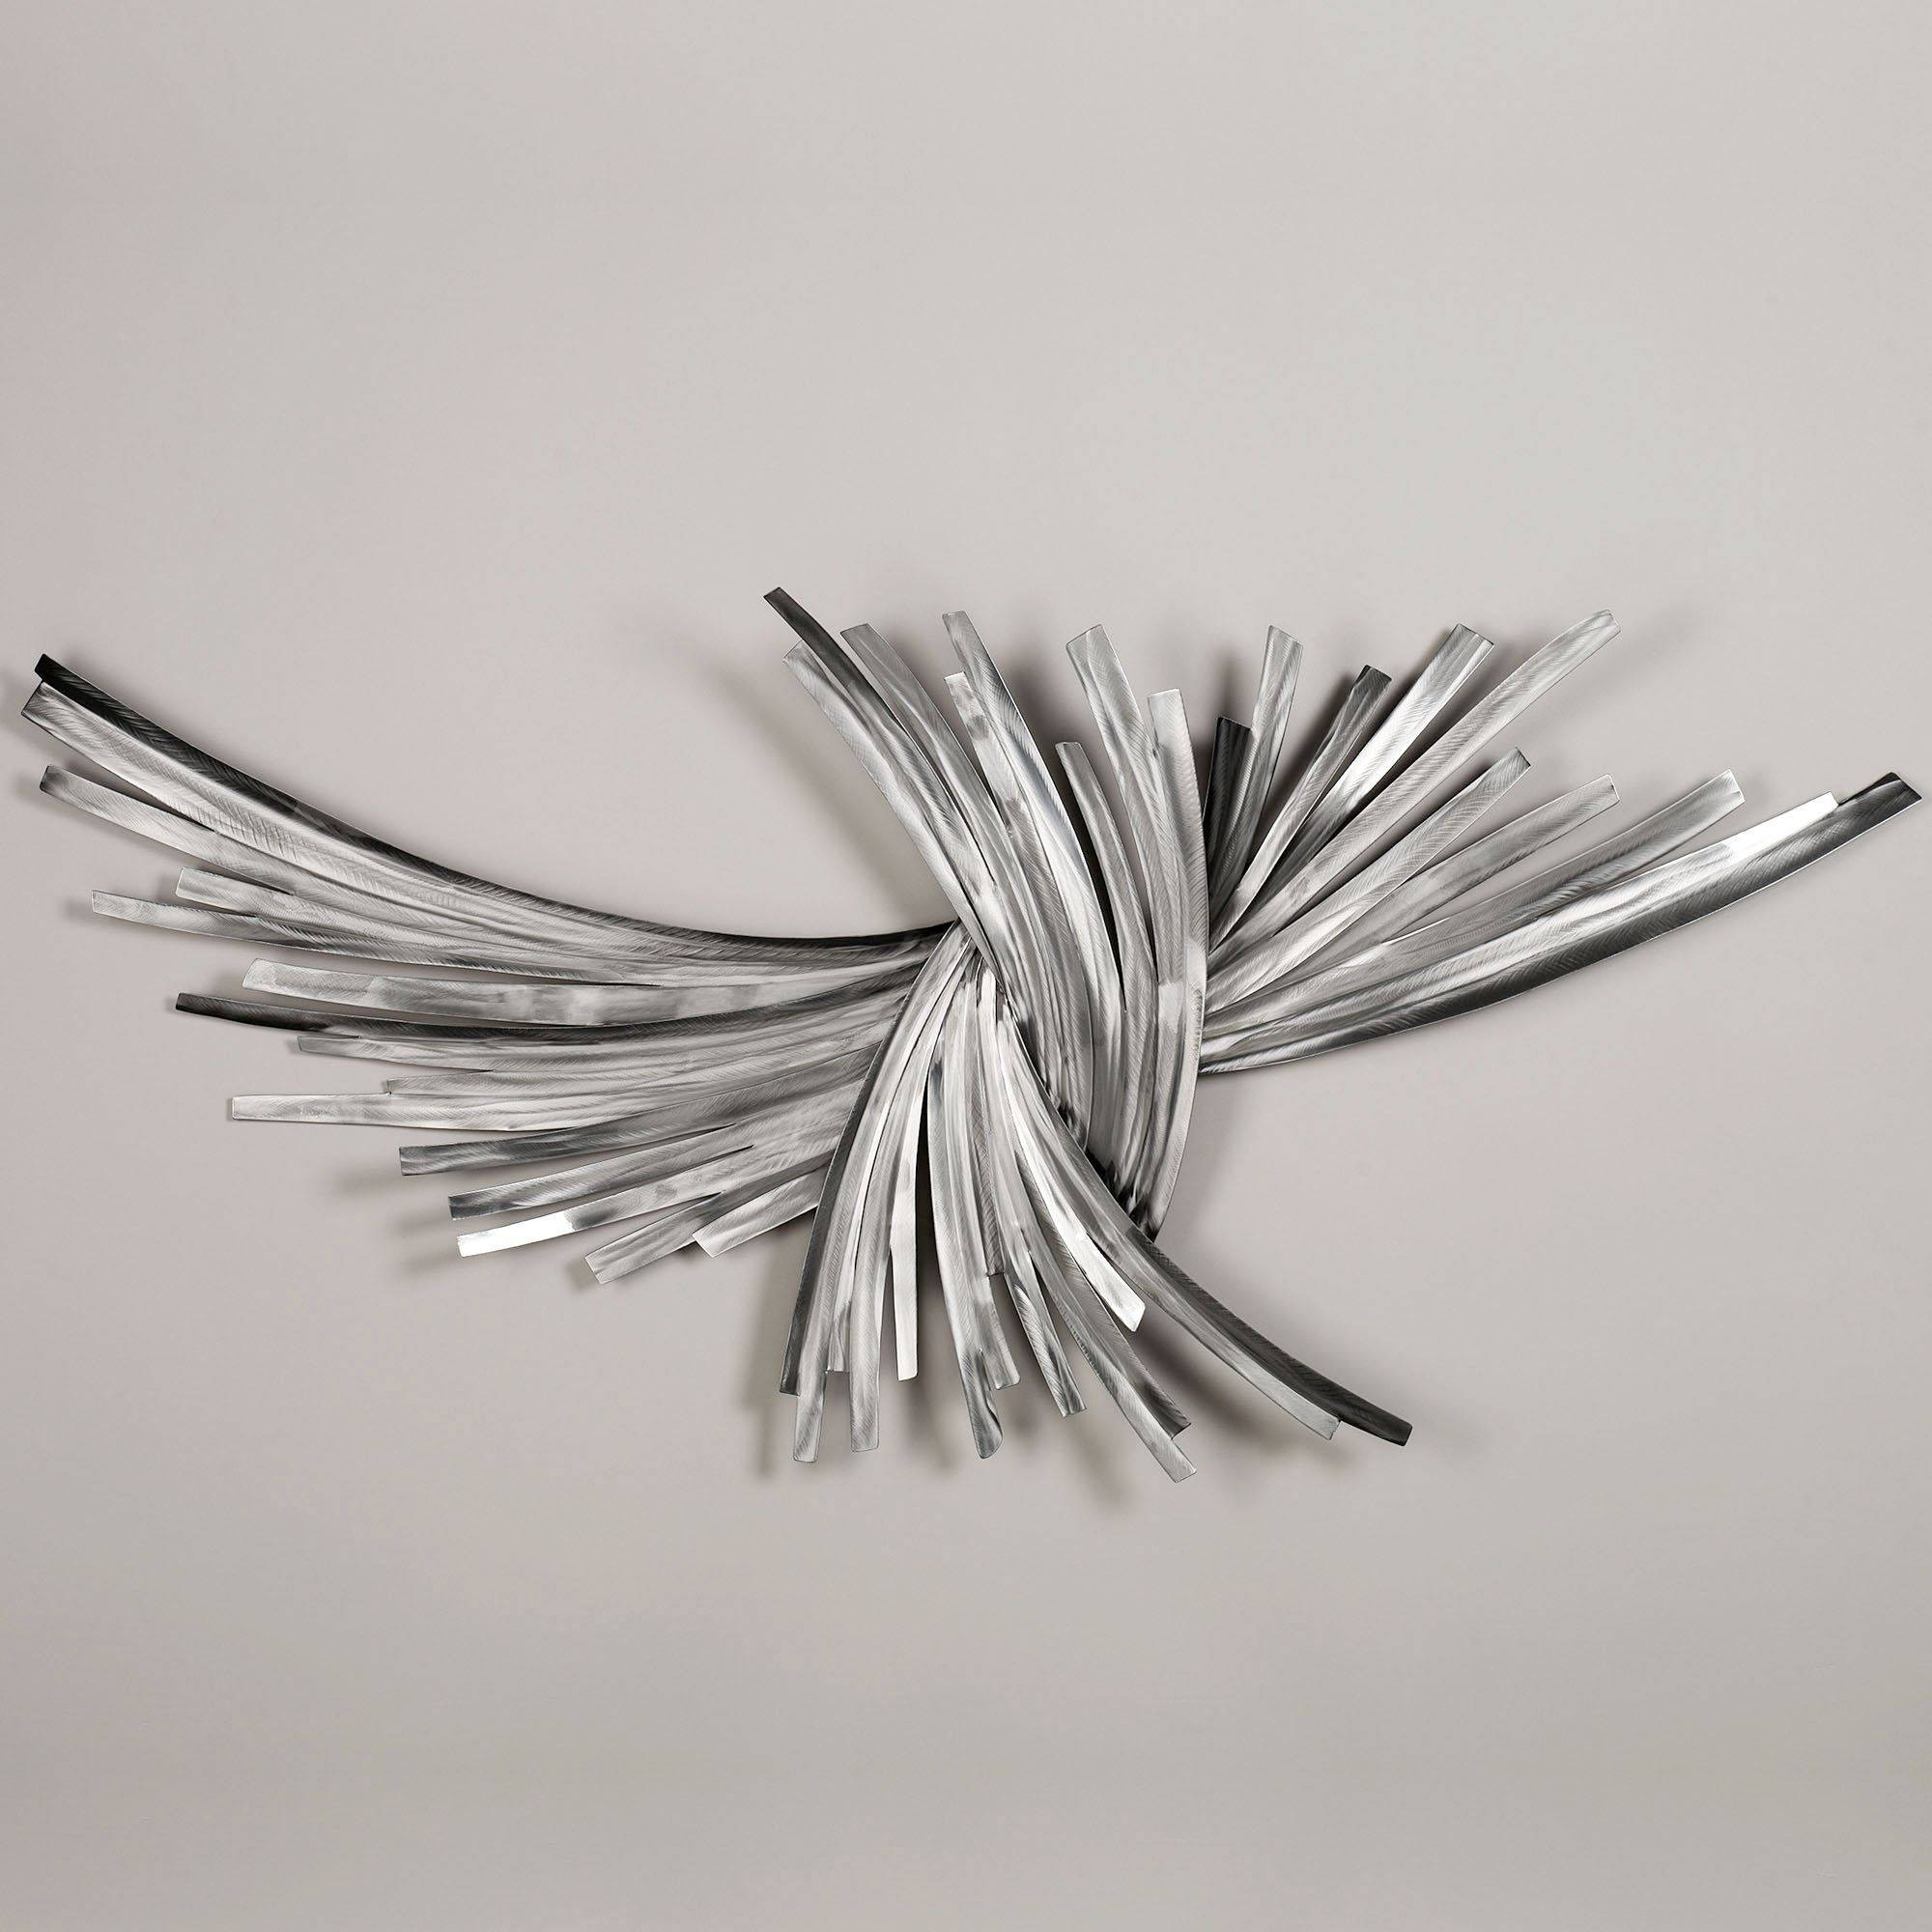 Startling Class Plus Infinity Silver Wall Sculpture Metal Wall Art With Regard To Most Recently Released Bronze Tree Wall Art (View 21 of 25)